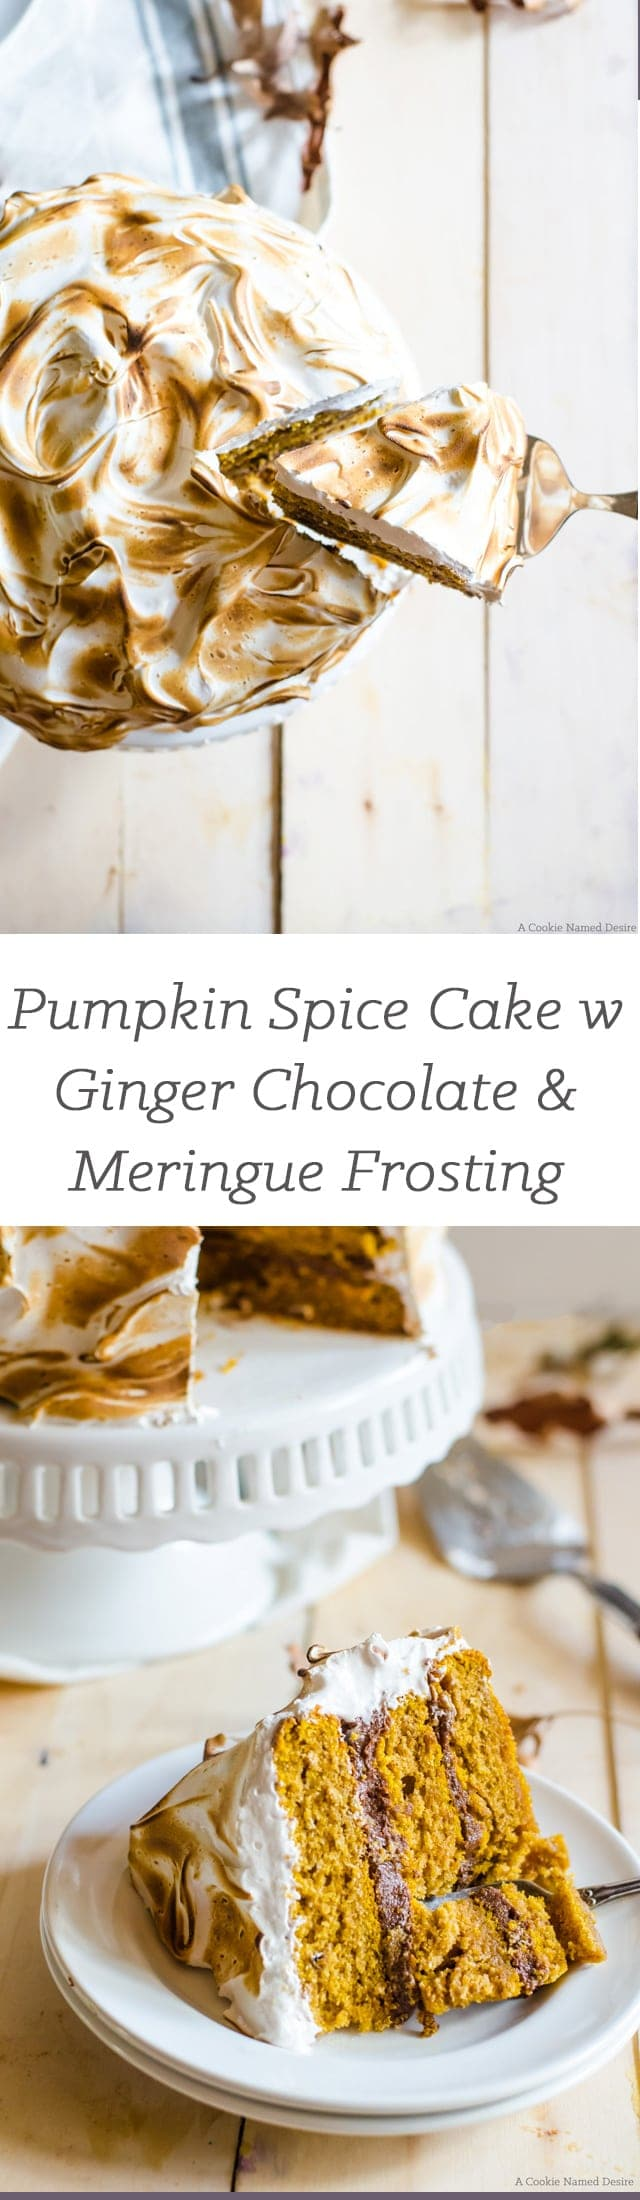 A deliciously flavorful pumpkin spice cake with ginger chocolate buttercream and pillows of cinnamon meringue. This cake is the perfect autumn dessert